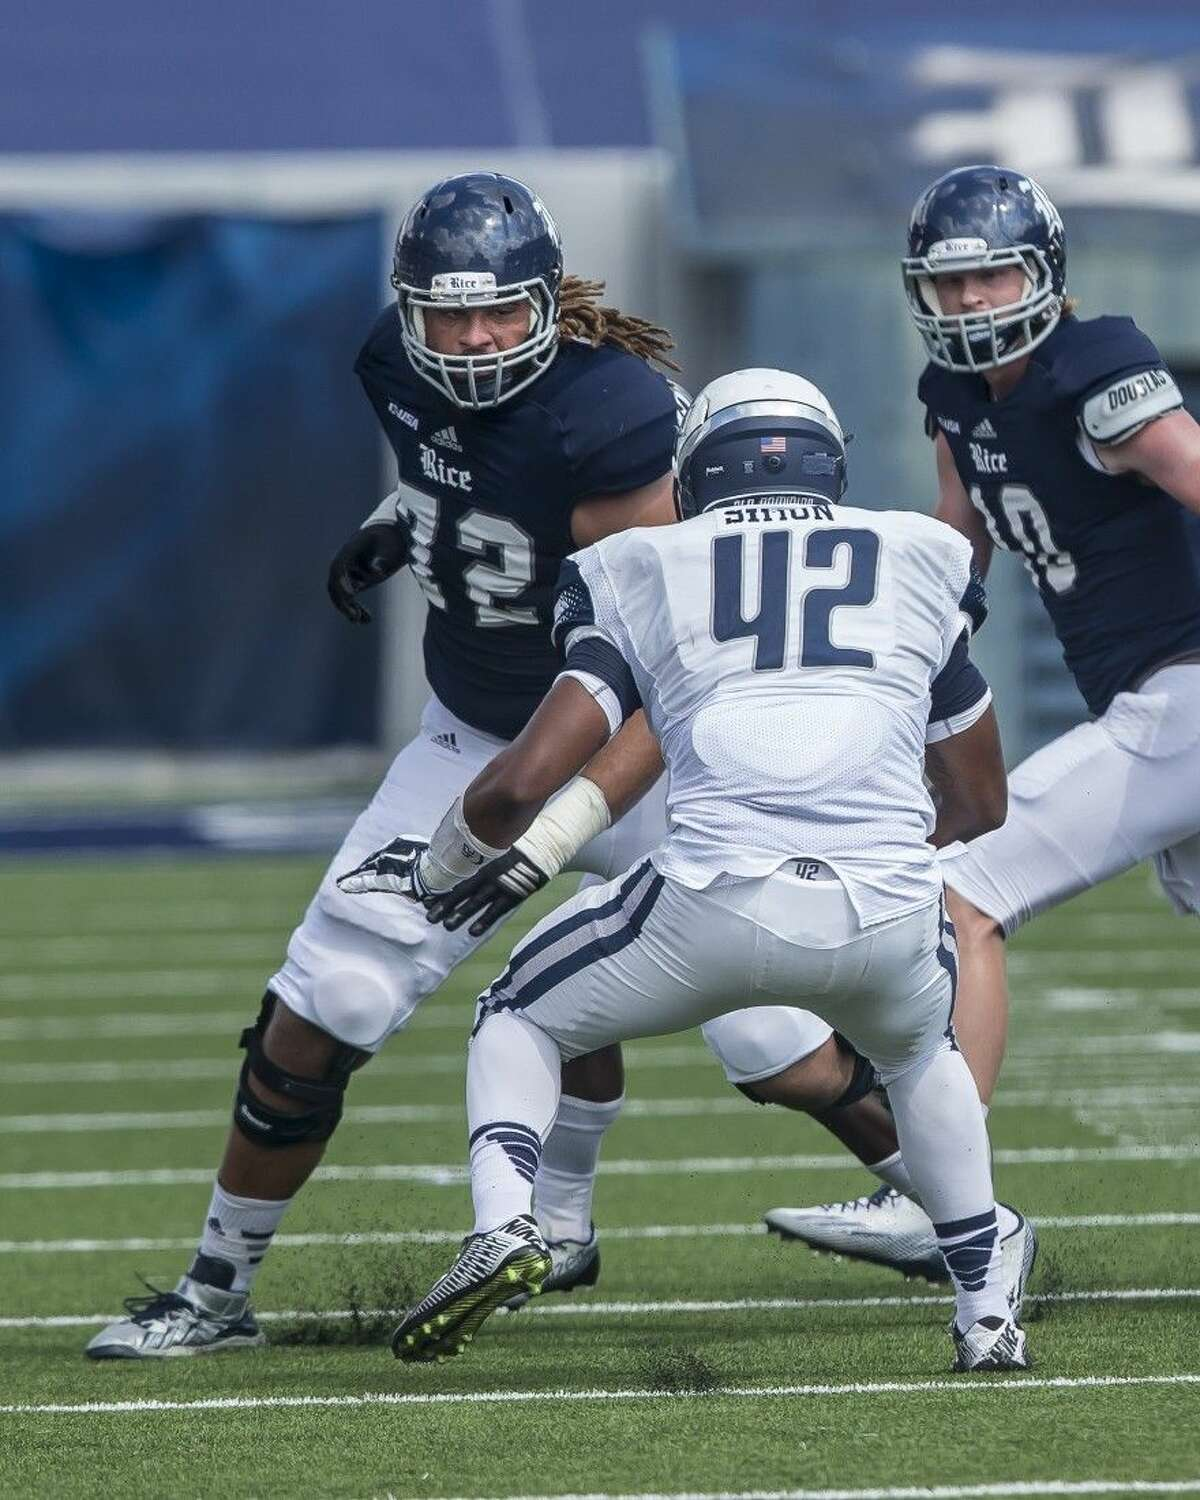 Former Pearland Oiler standout Ian Gray (72) of Rice University will compete in the College Gridiron Showcase Jan. 31 in Arlington.